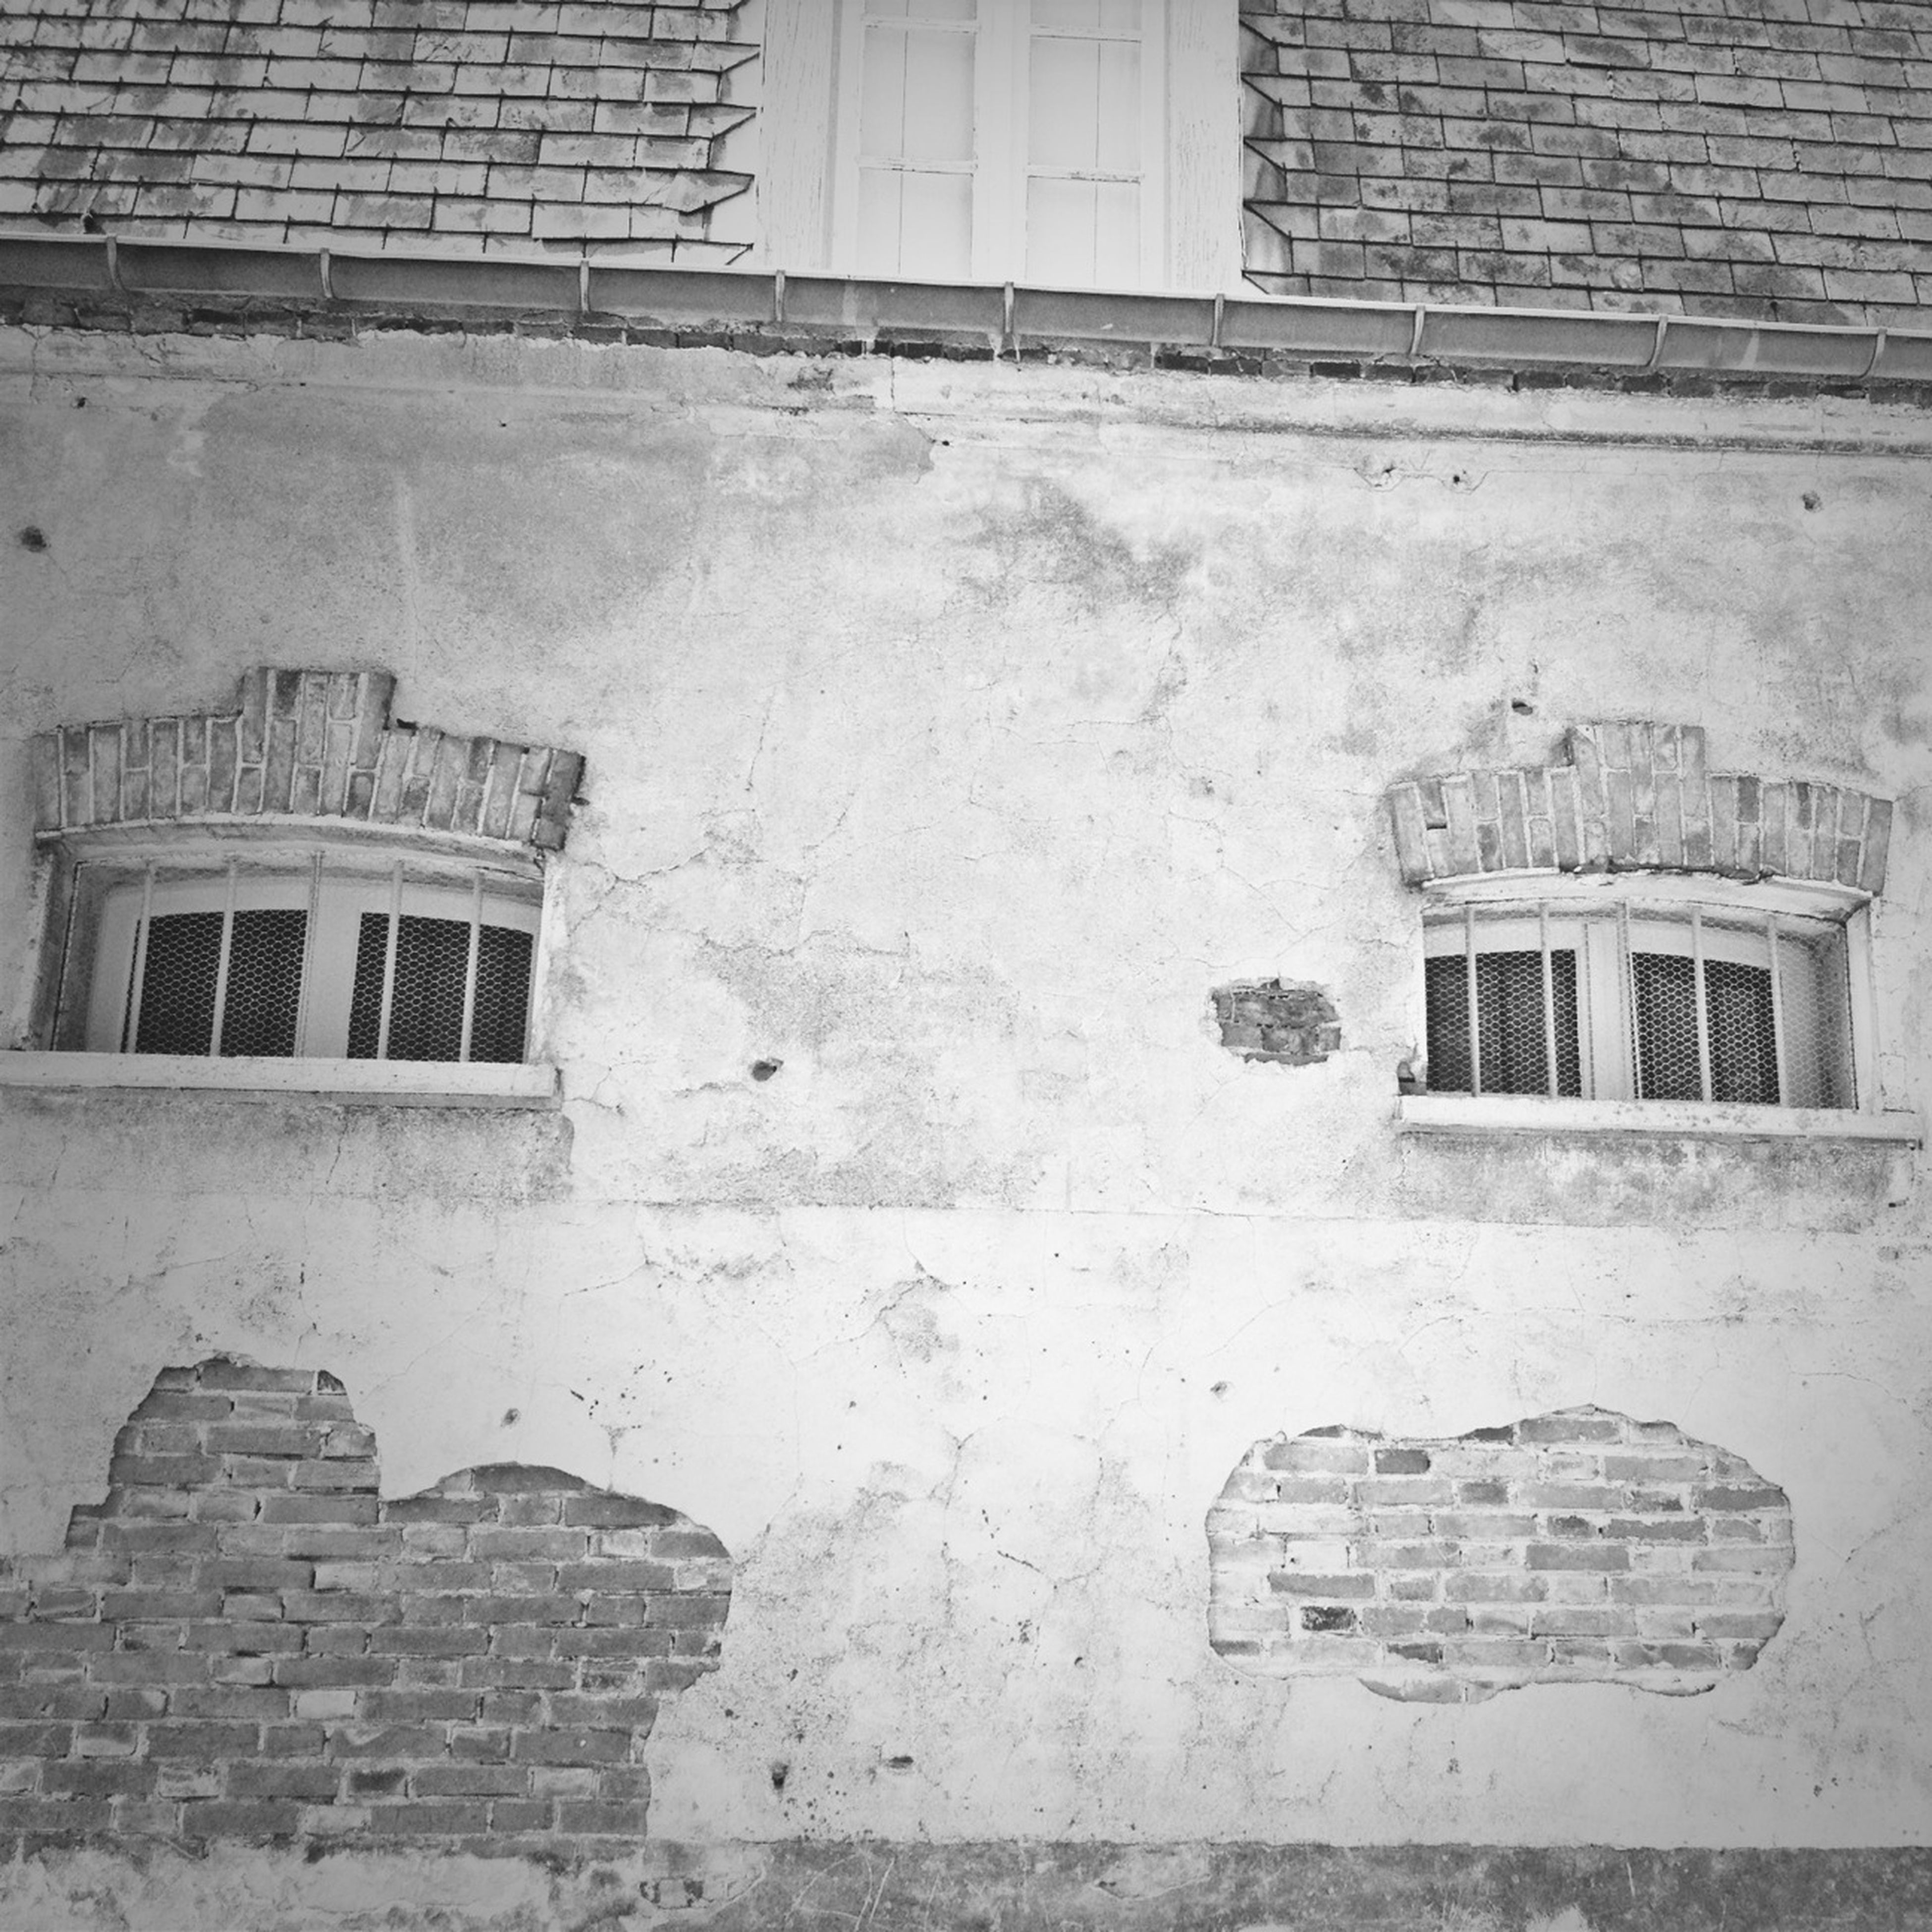 building exterior, architecture, built structure, window, brick wall, building, wall - building feature, residential building, old, house, residential structure, abandoned, day, outdoors, wall, weathered, city, damaged, no people, exterior